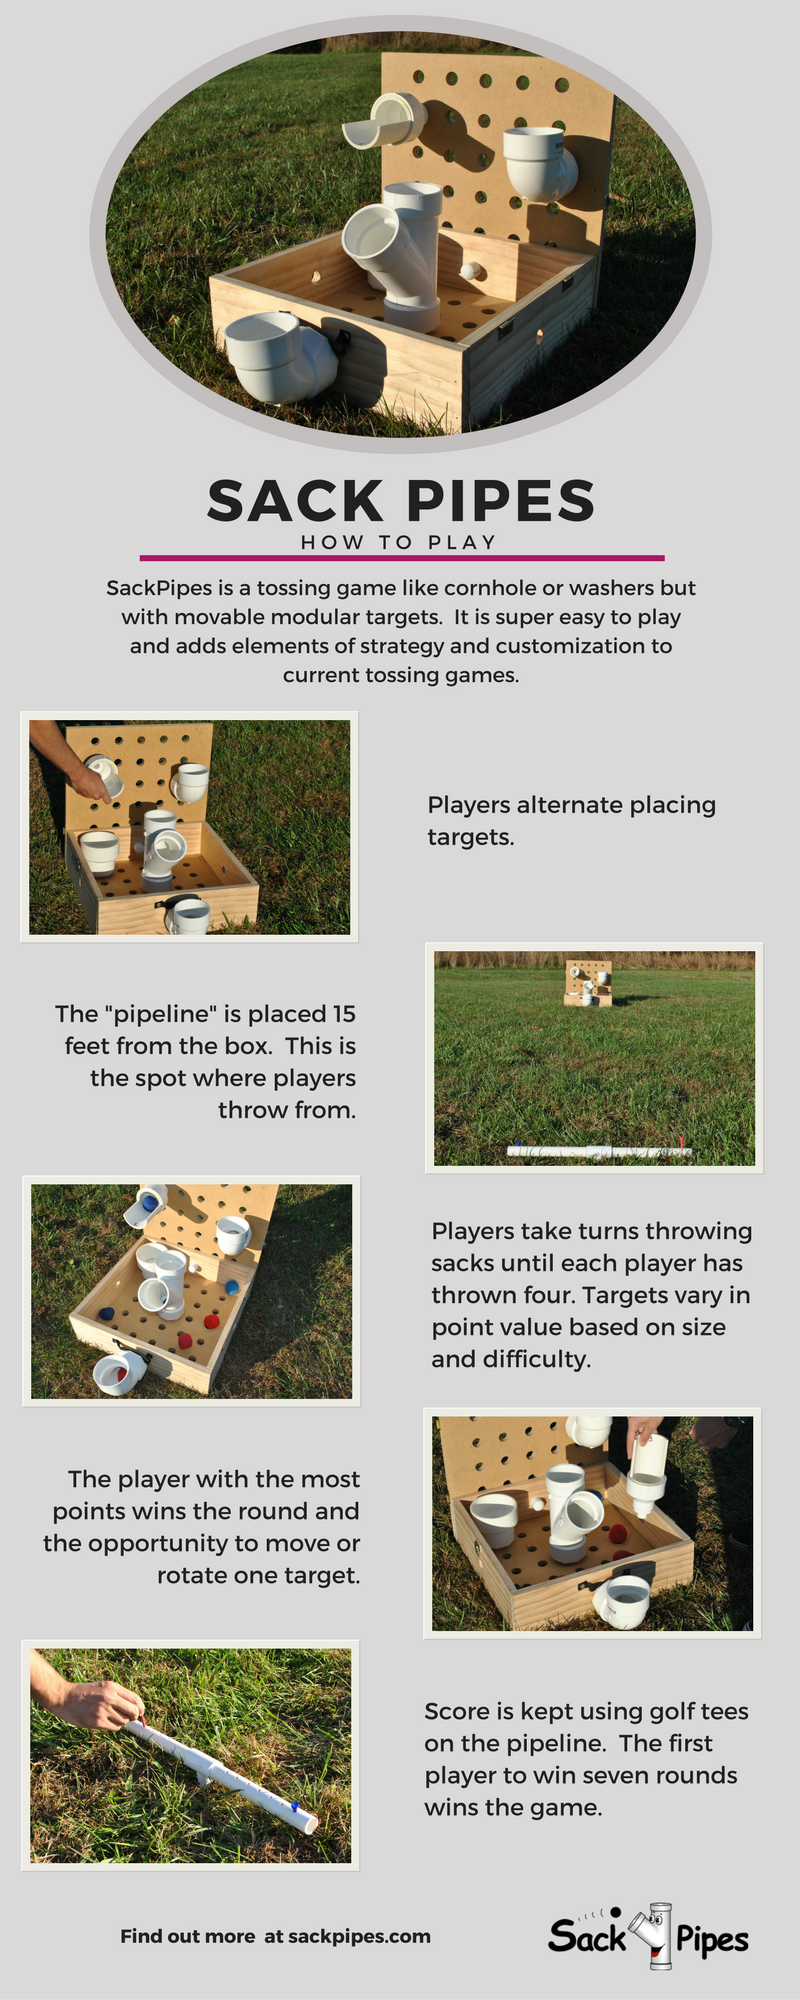 SackPipes is a new tossing game that adds elements of strategy and customization. Movable, modular targets means that every game is unique.